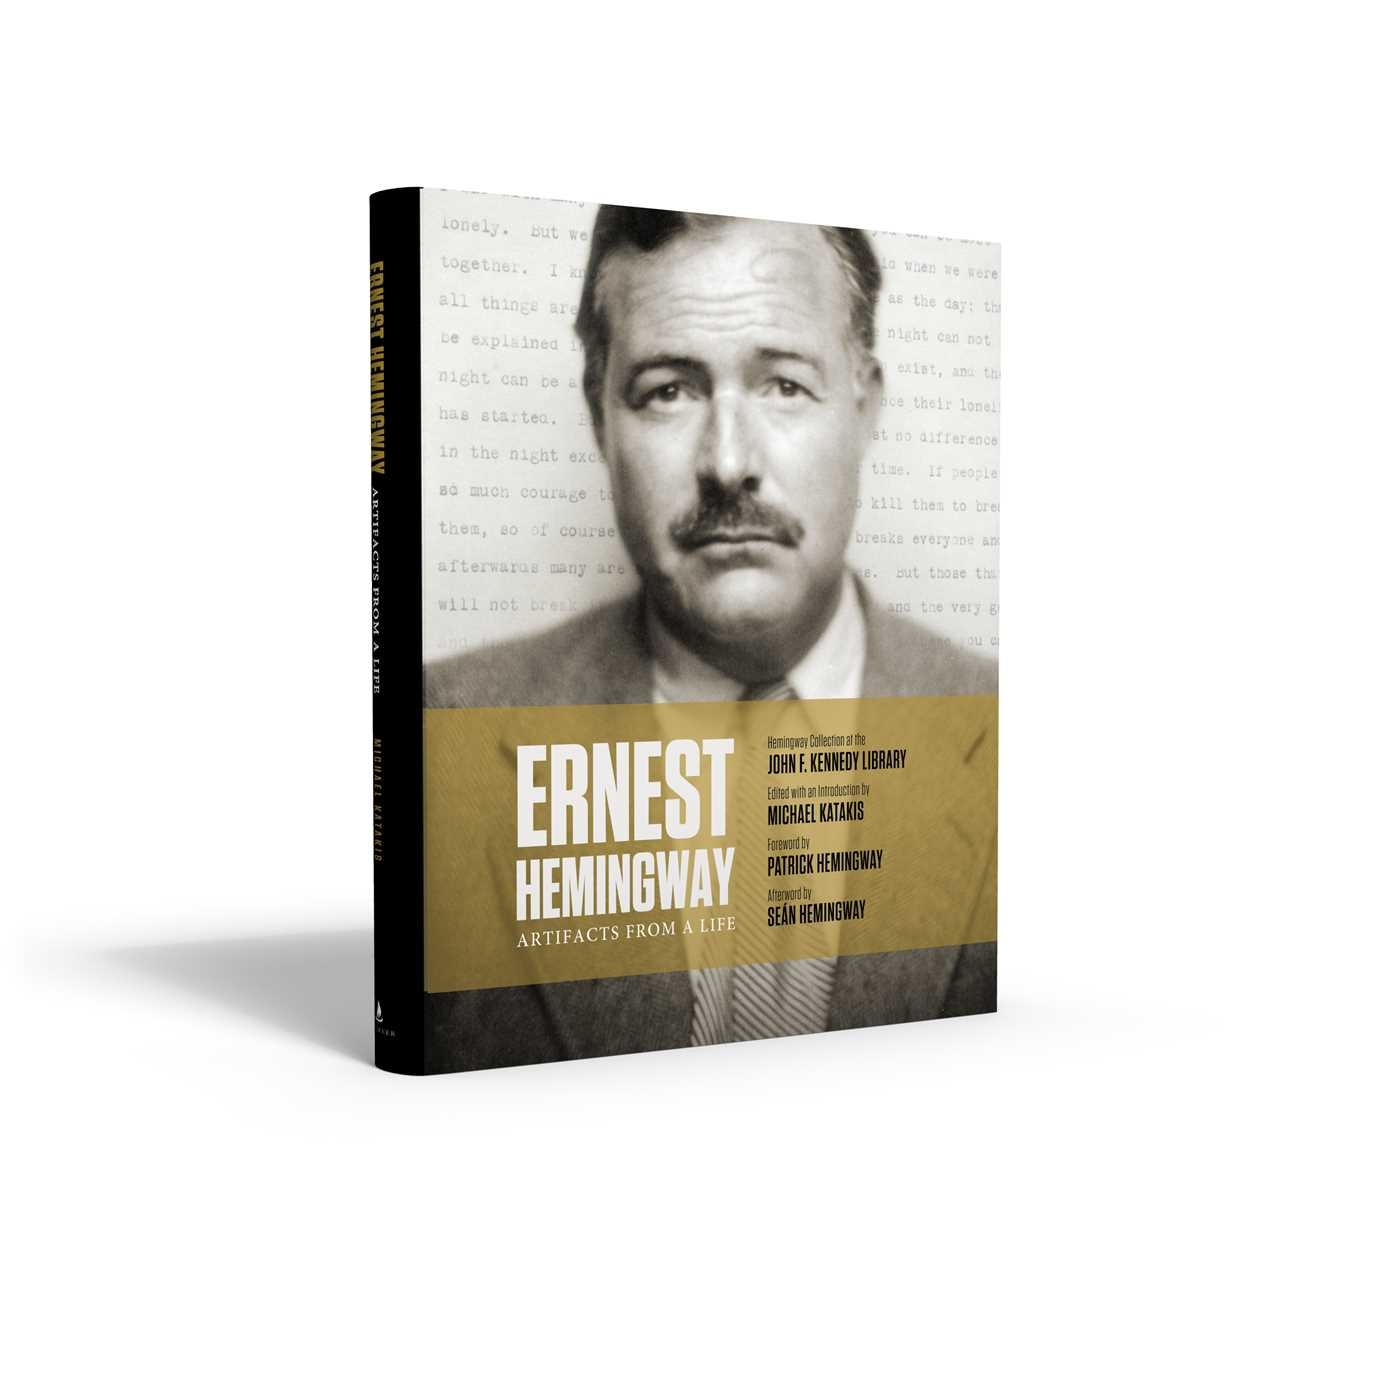 Ernest hemingway artifacts from a life 9781501142086.in17